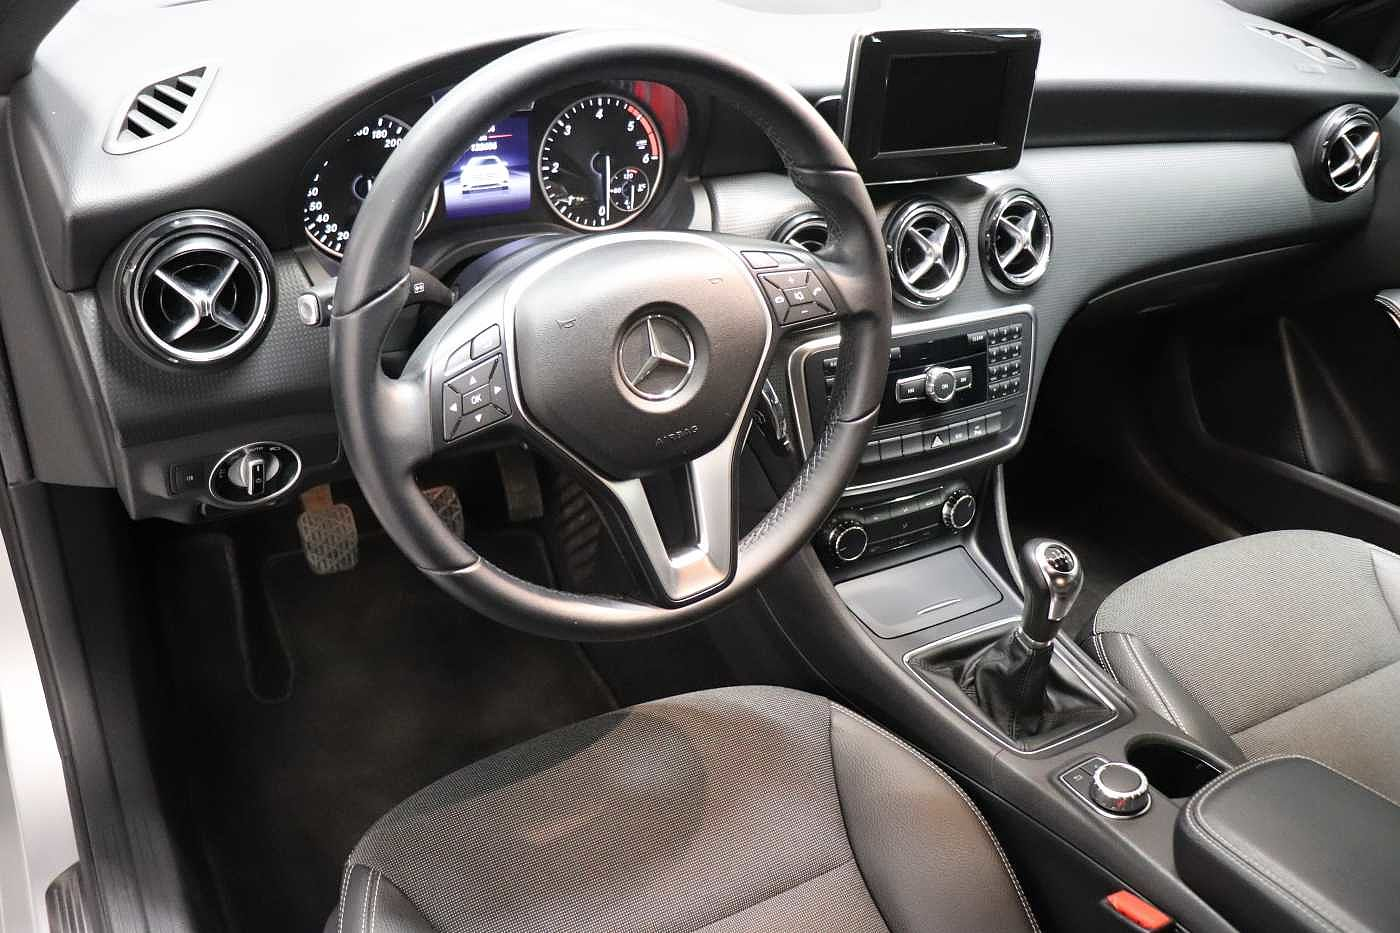 Mercedes-Benz A 180 1.5D - photo 13